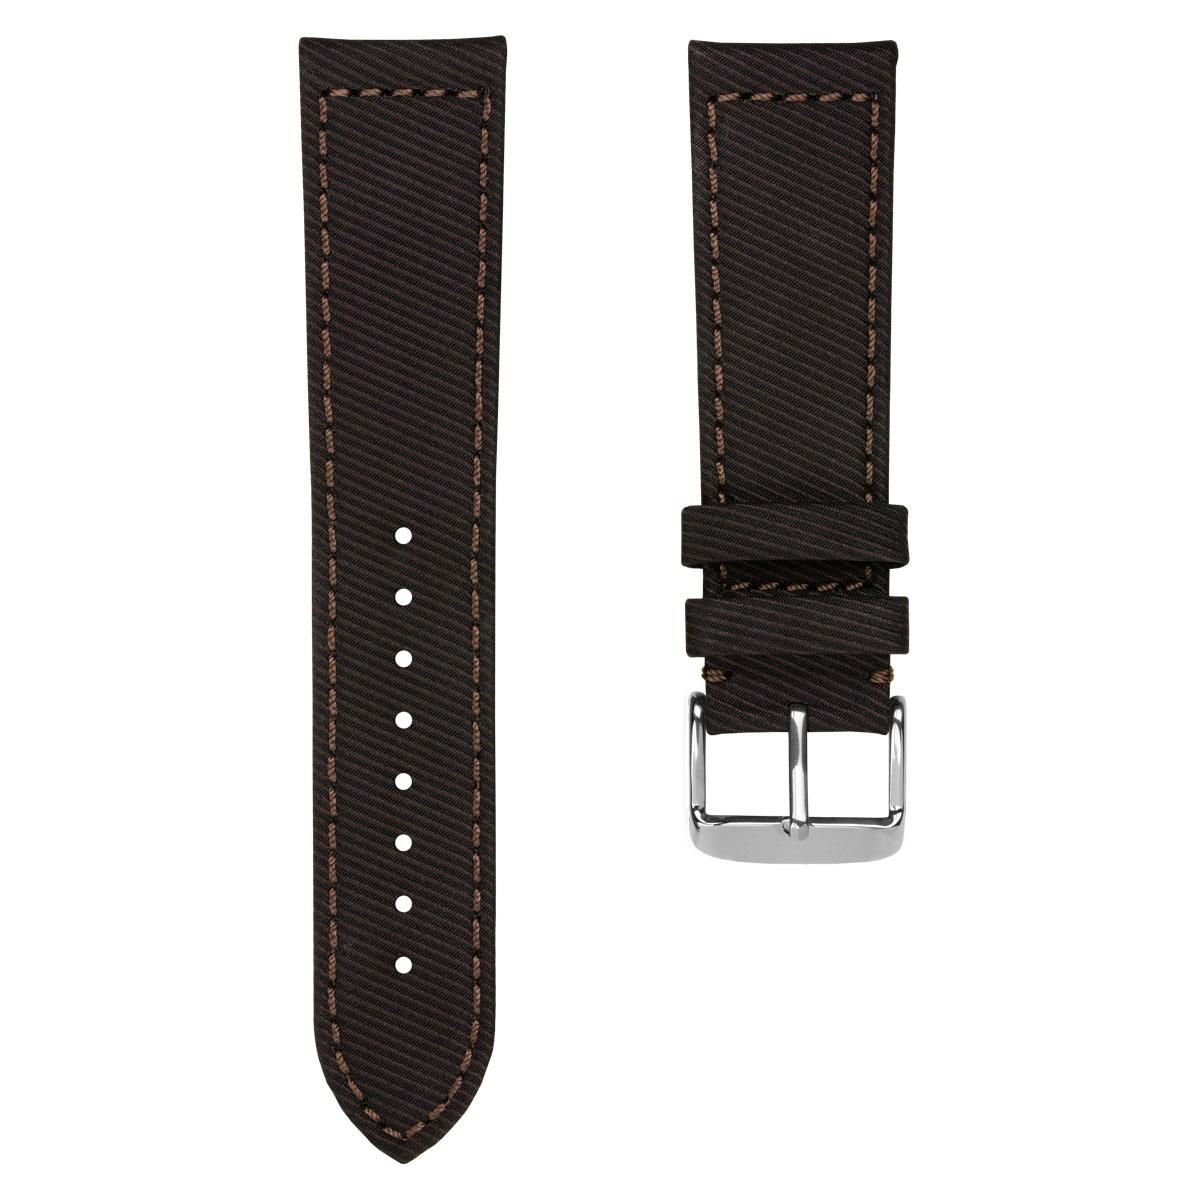 Corfinio Gabardine Recycled Fabric Watch Strap